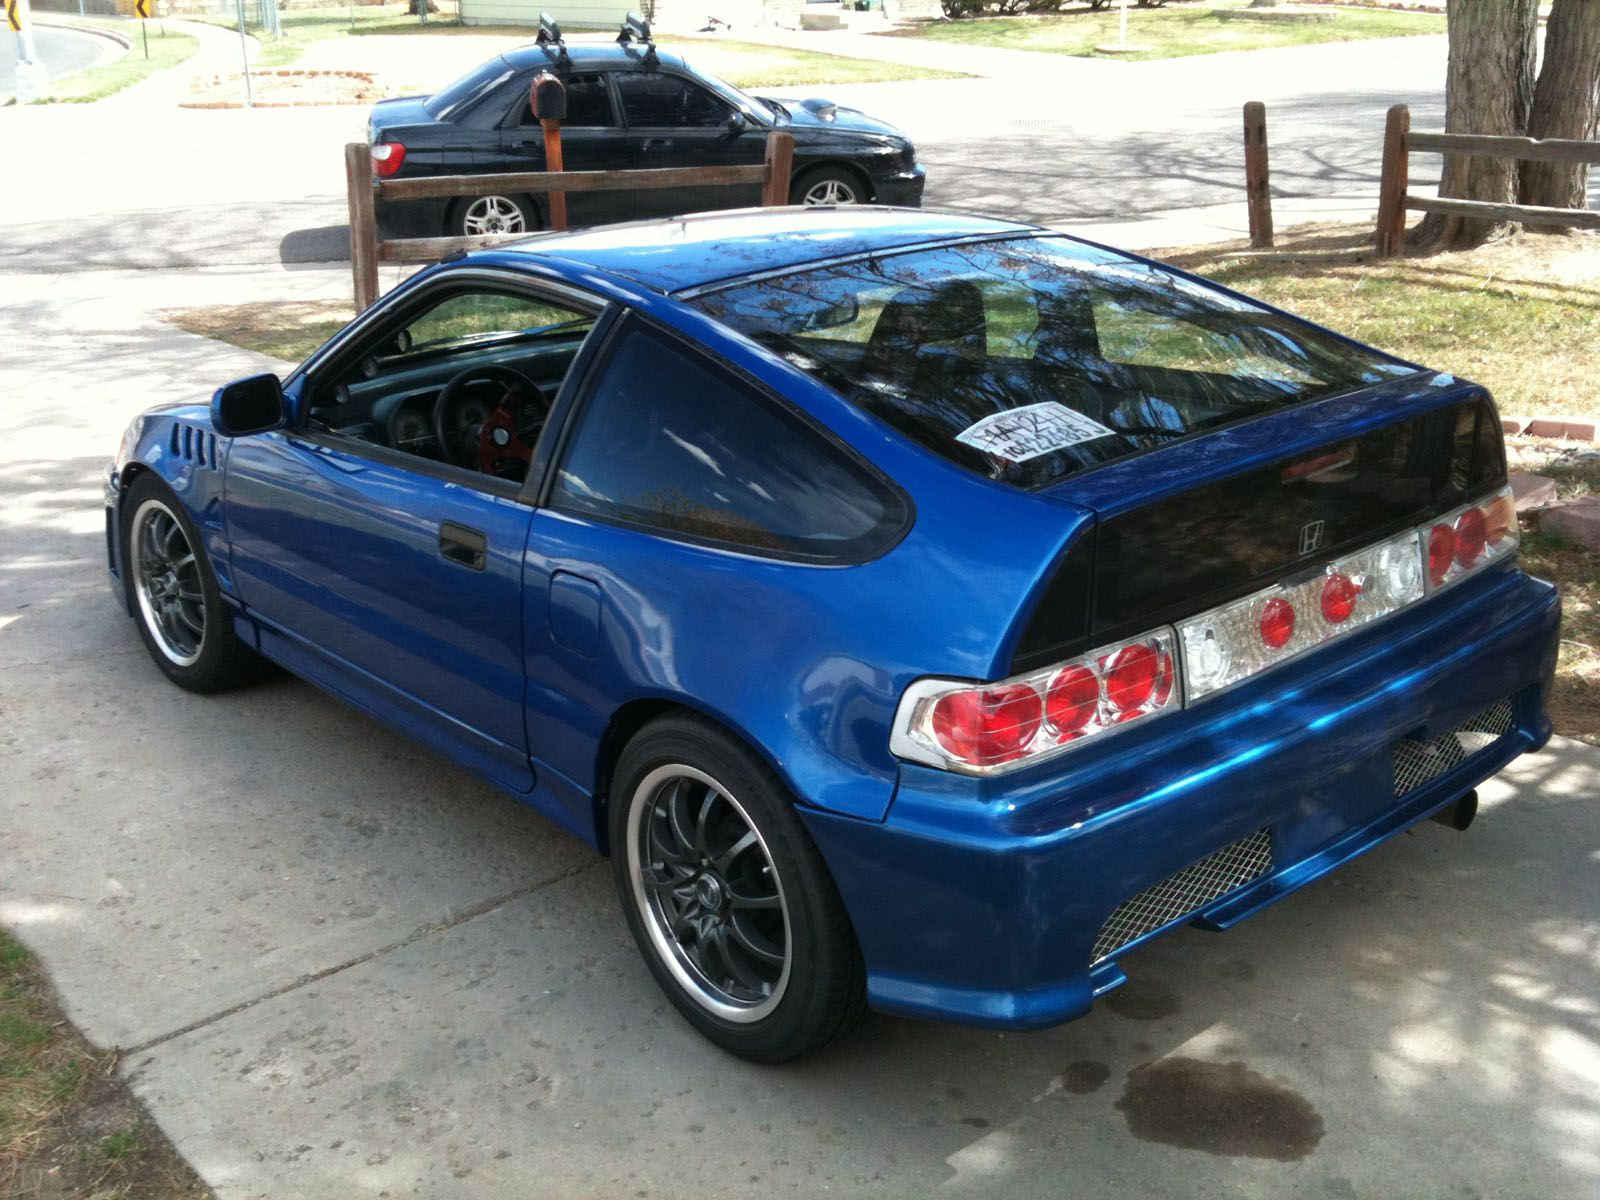 hight resolution of 89 honda crx hatchback that is one of the sickest cars i have ever seen i cried a little